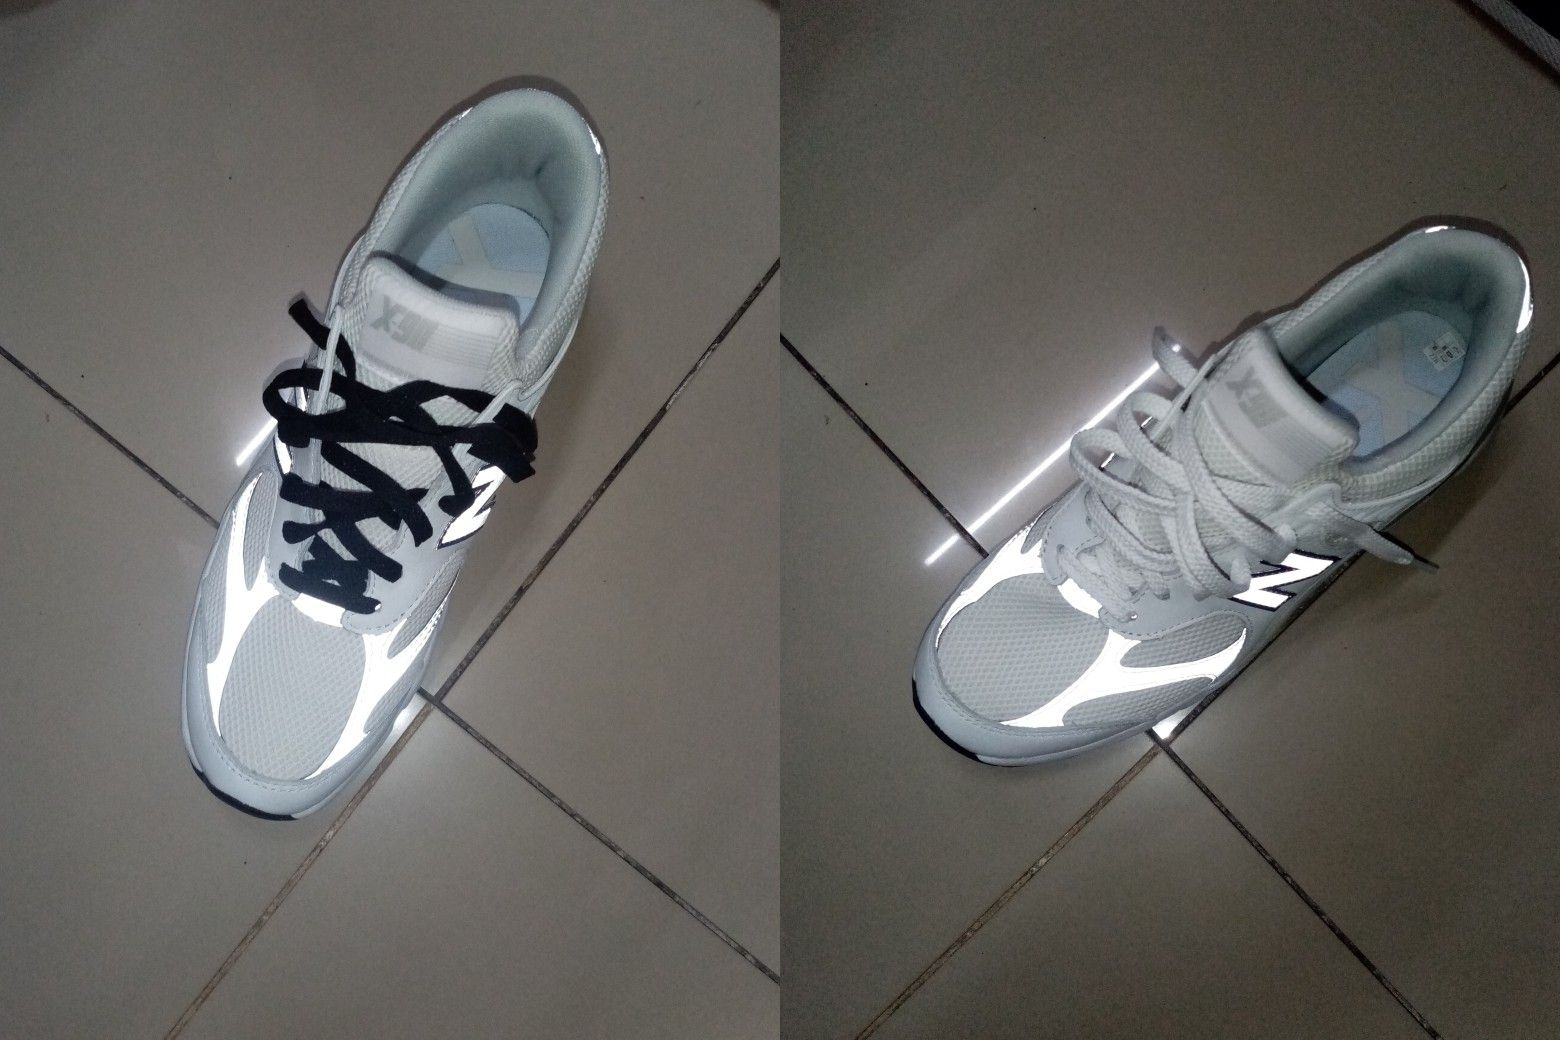 Which one are more the one with the black laces or white